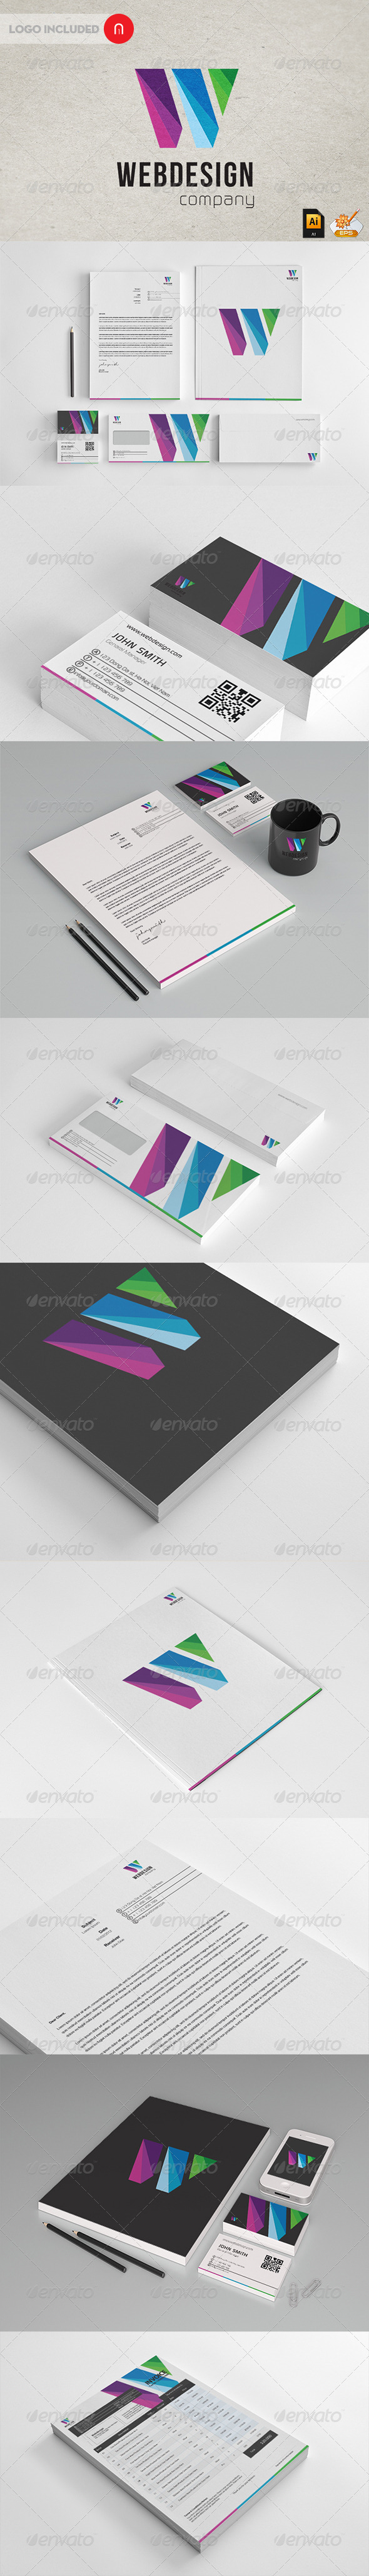 GraphicRiver Wen Design Modern Stationary & Invoice 3112752